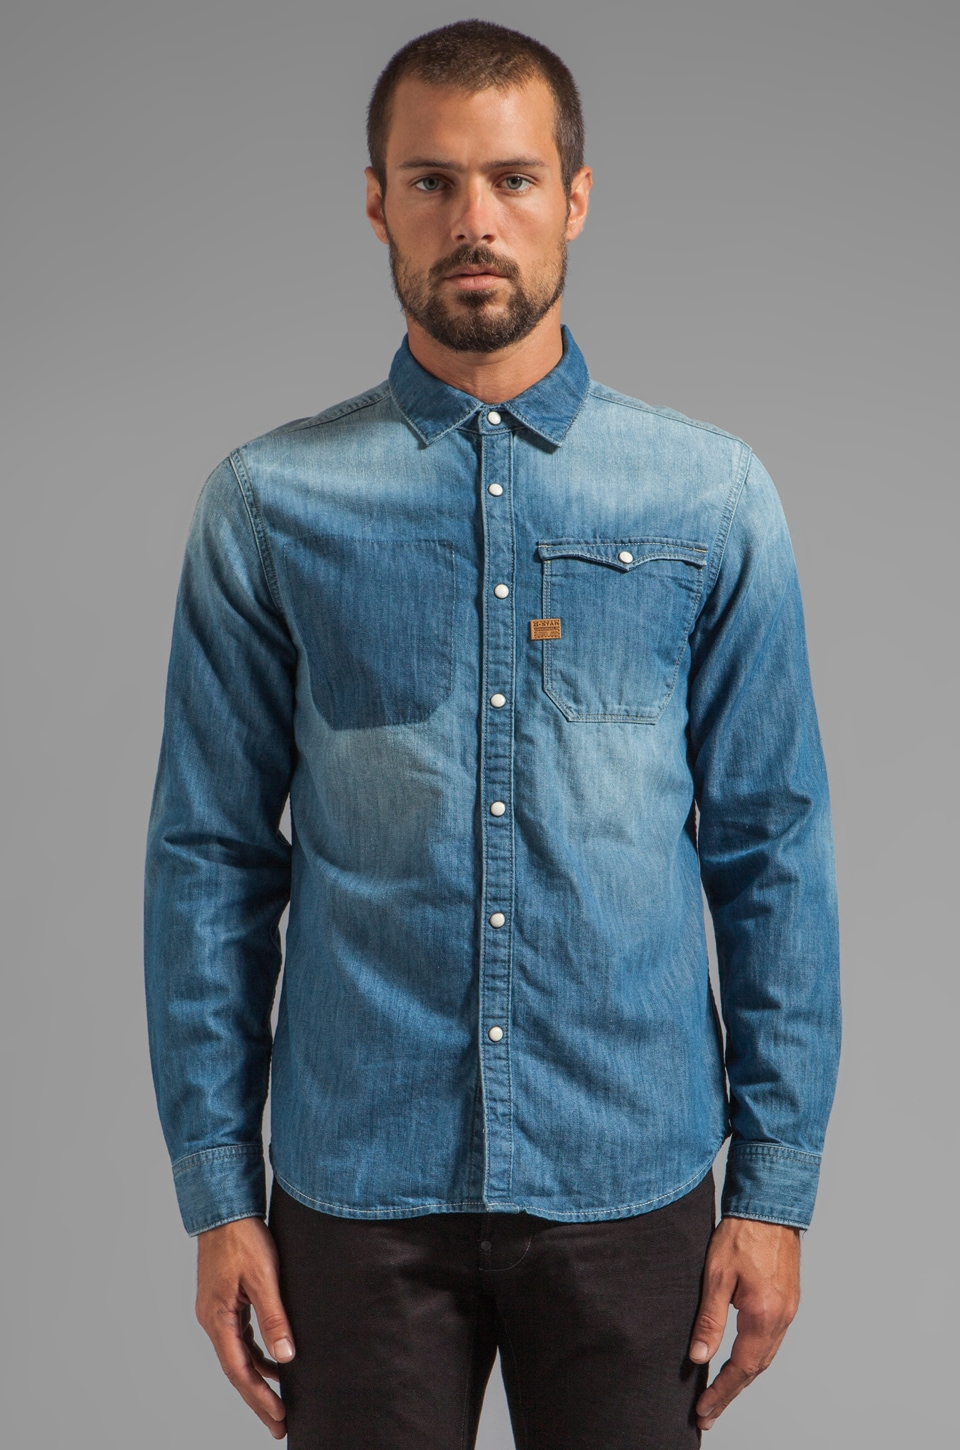 G-Star Hunter Vintage Shirt in Light Aged